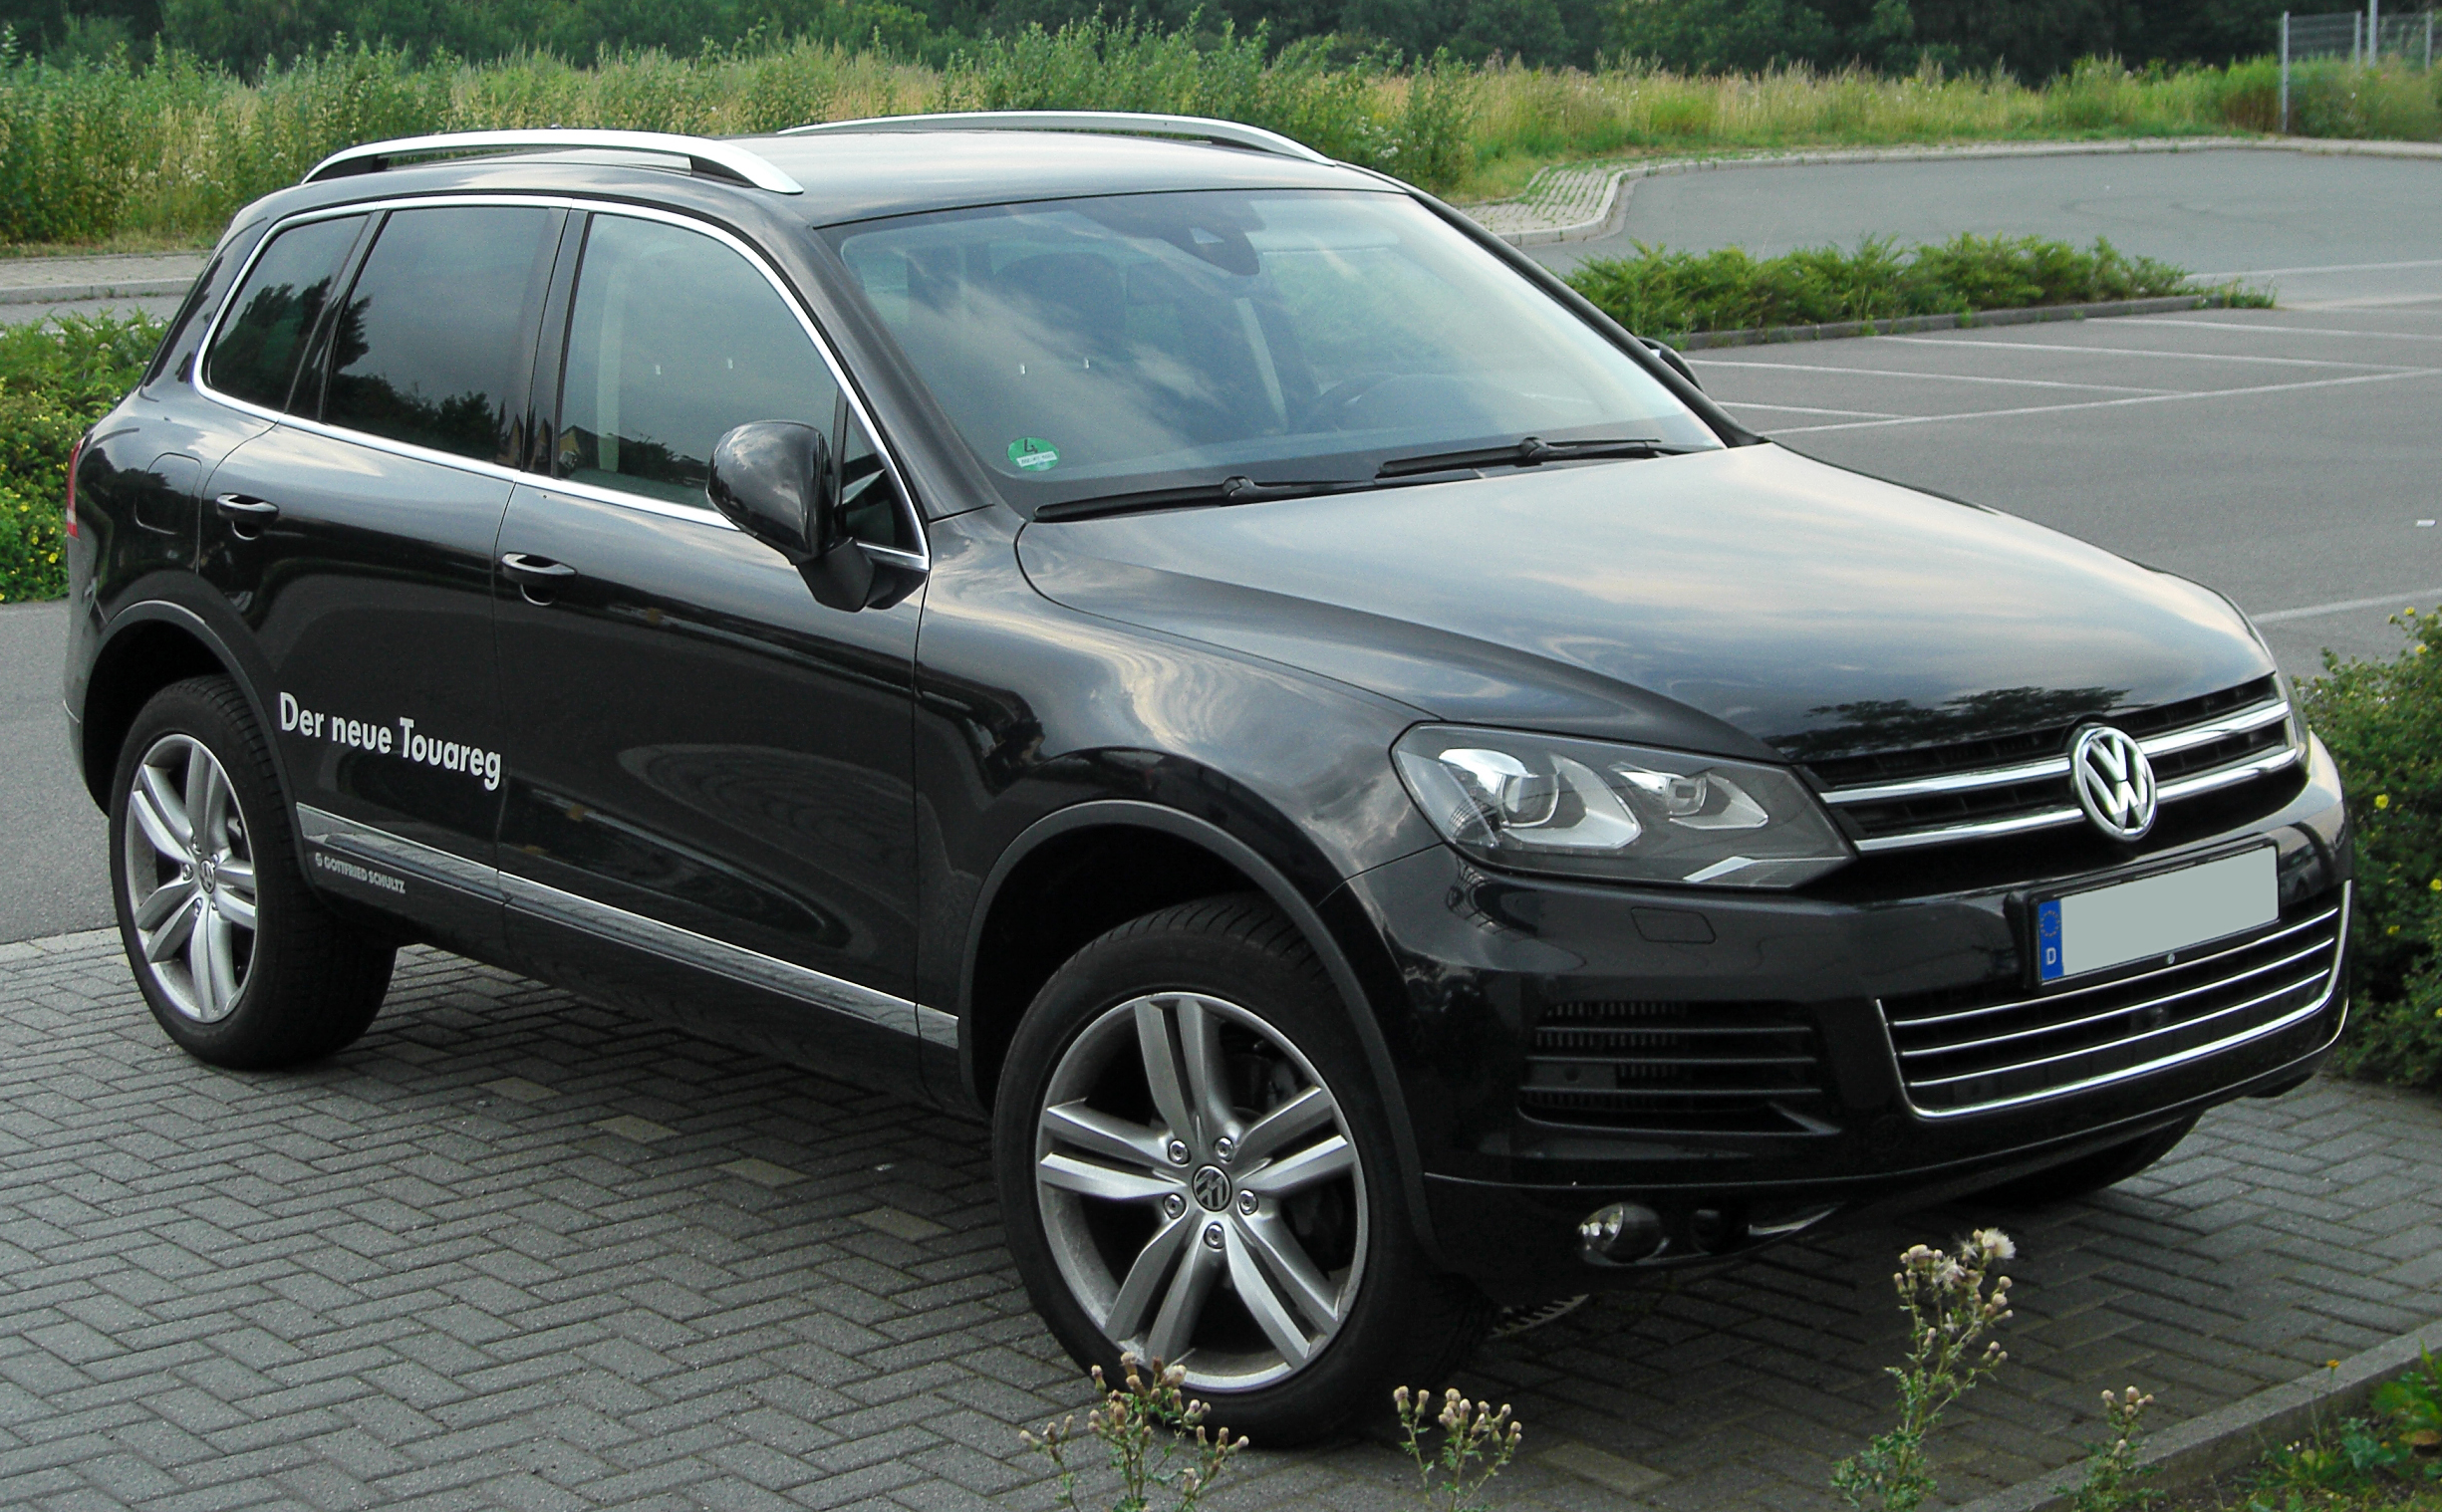 file vw touareg ii v6 tdi bluemotion front wikimedia commons. Black Bedroom Furniture Sets. Home Design Ideas